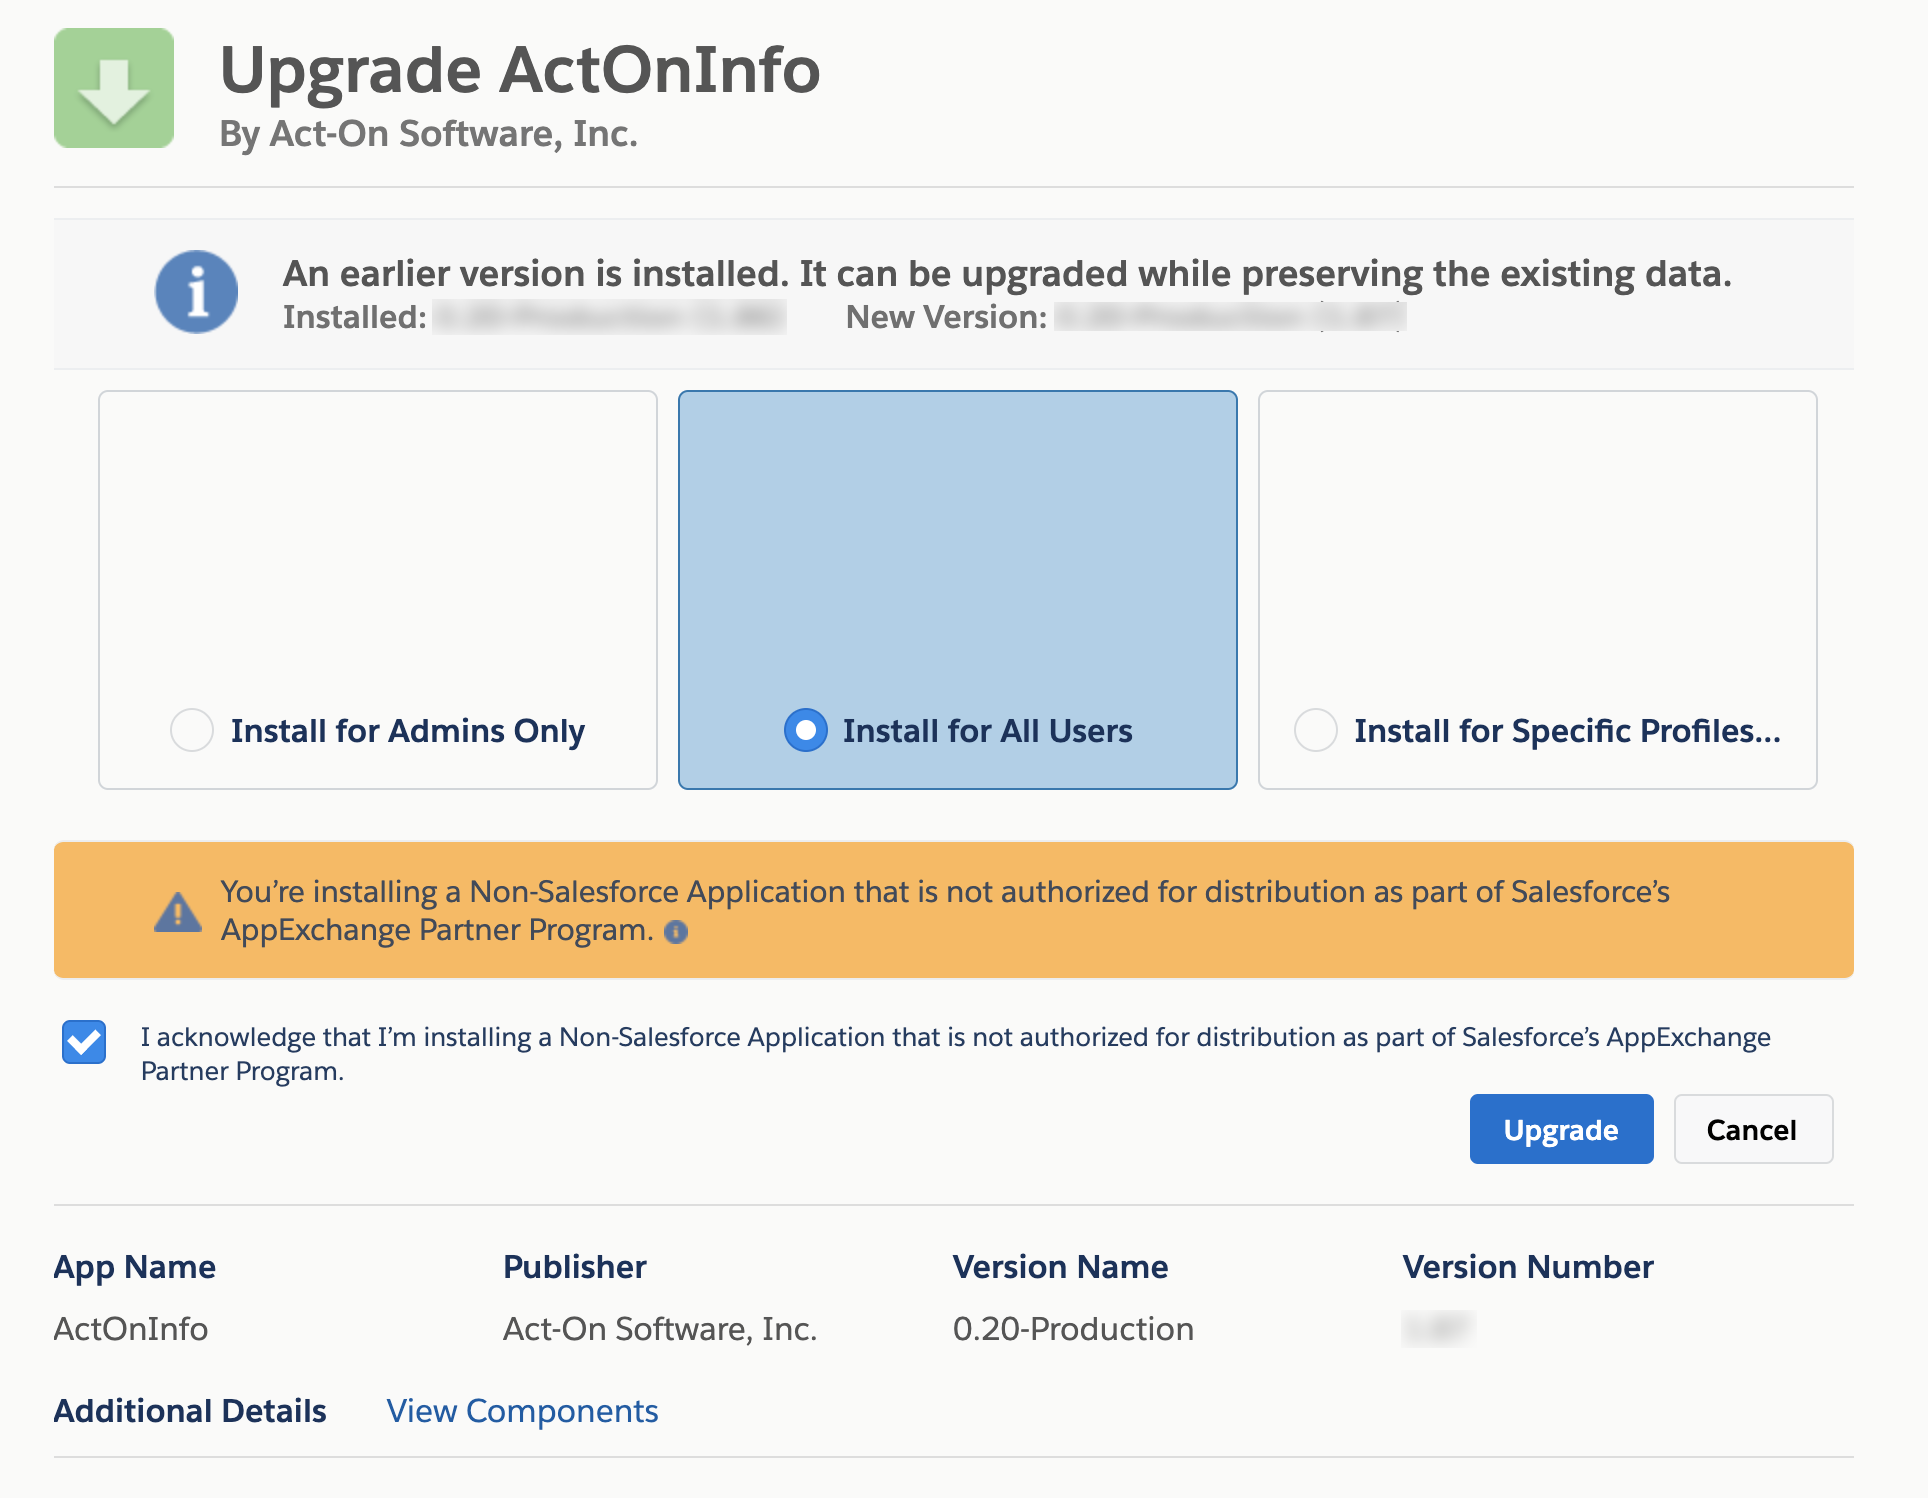 Screen Image of Upgrading ActOnInfo in Salesforce